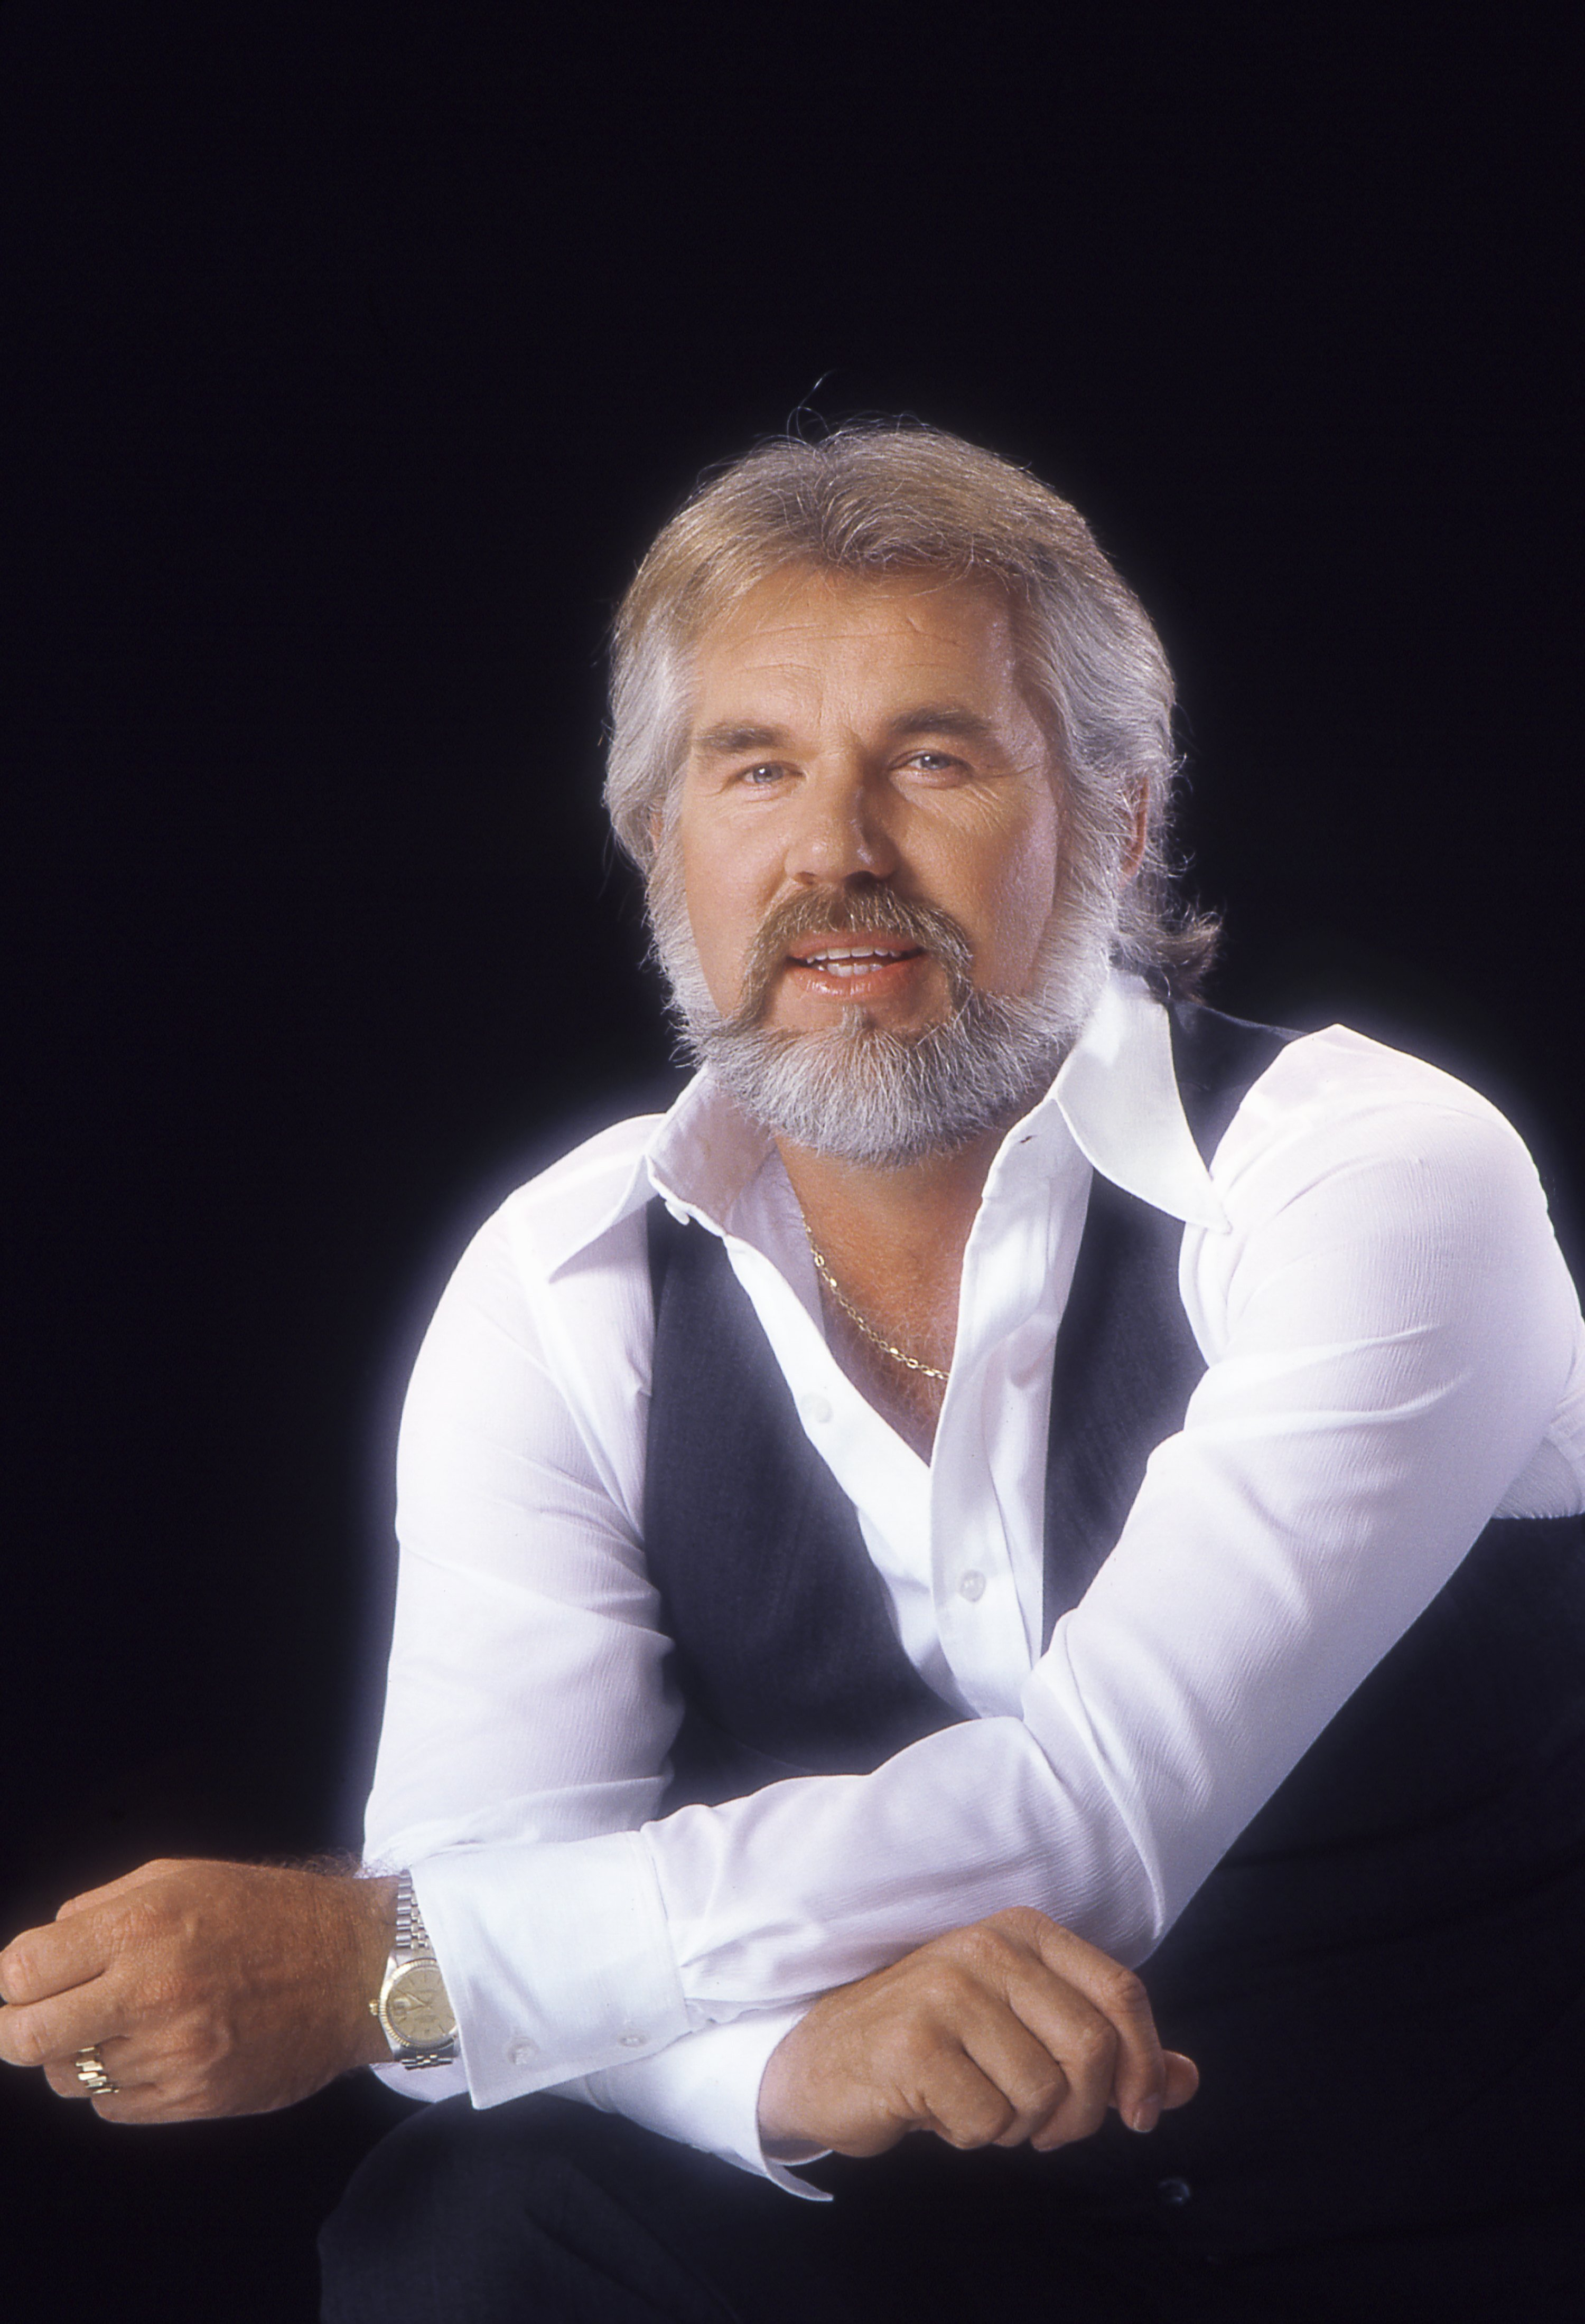 Image Credits: Getty Images | Kenny Rogers was an iconic country star